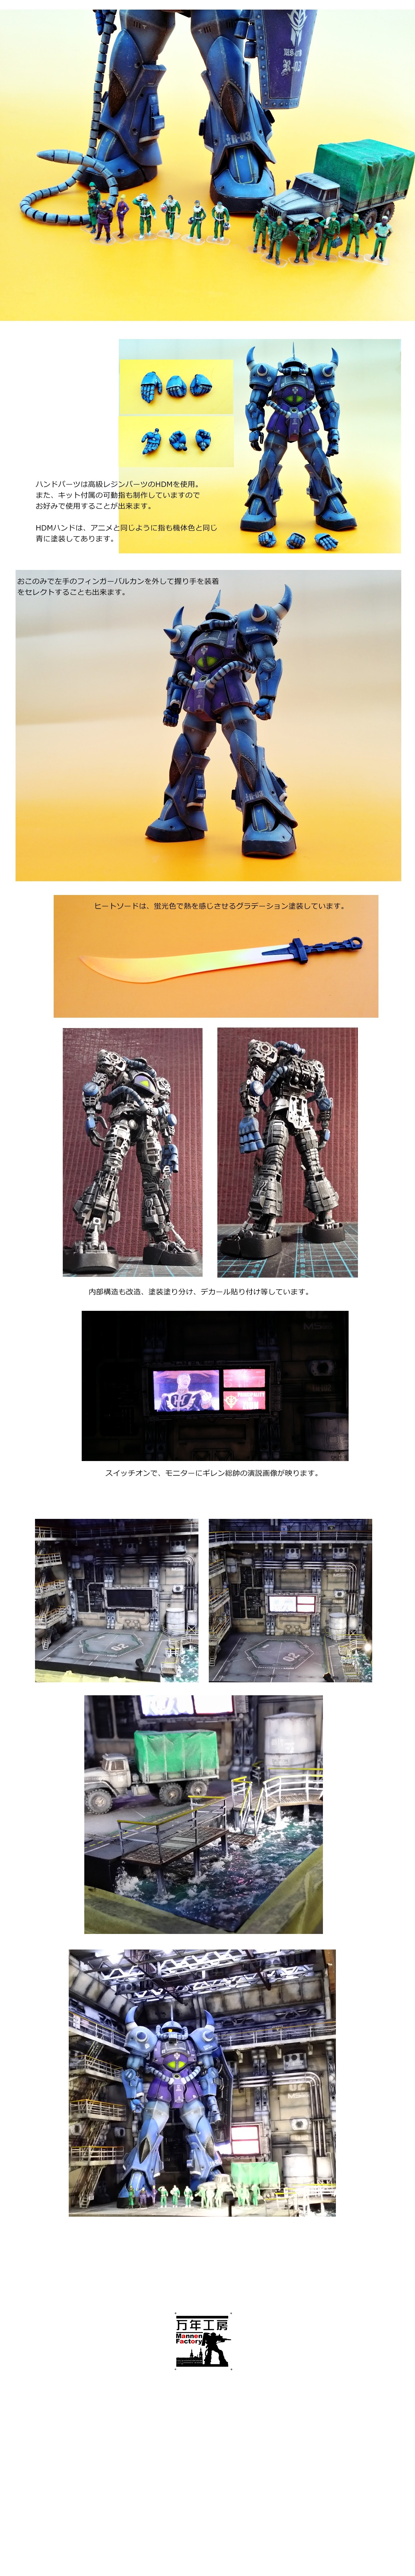 MG GOUF Ver.2.0 + RAMBA RAL CORPS + Sound Effects + LEDs. FULL REVIEW